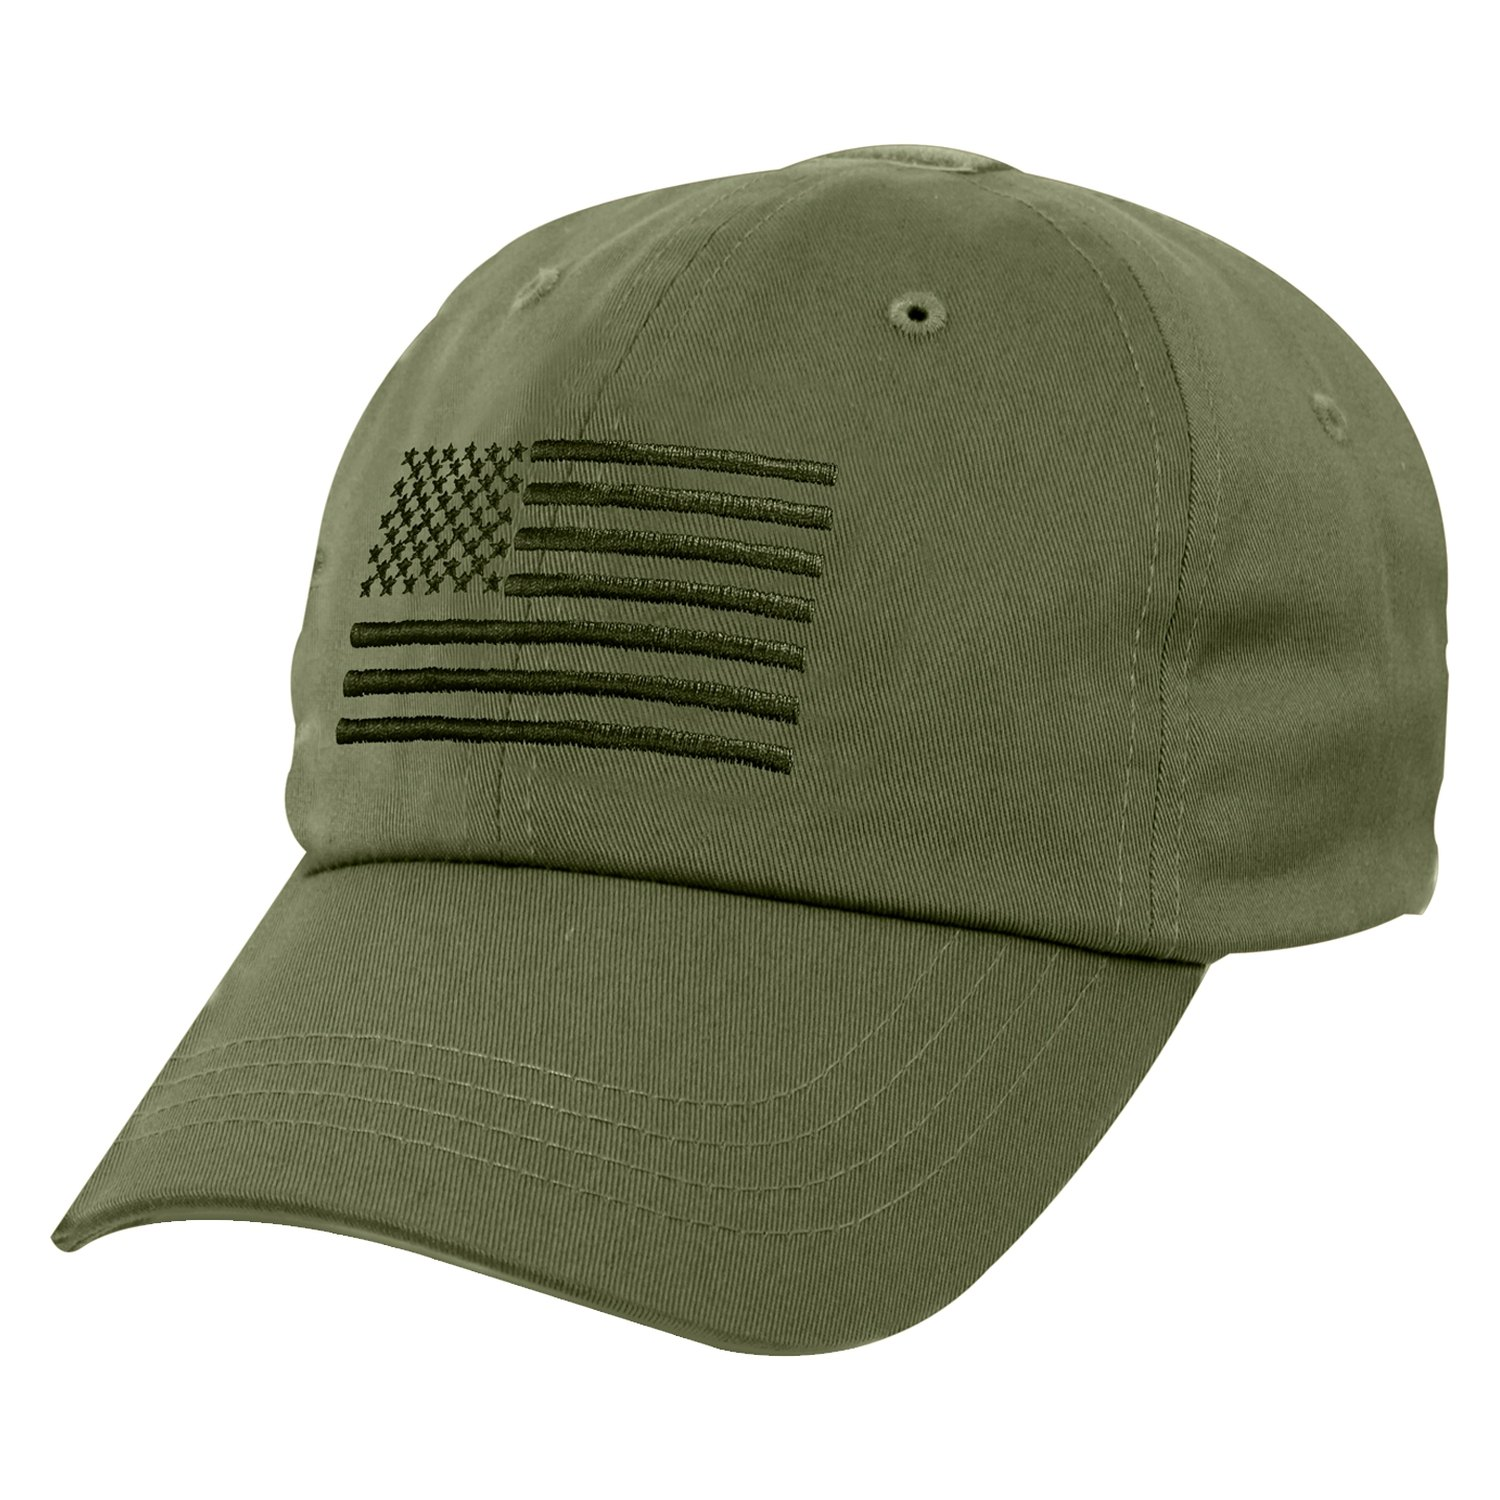 Rothco® 4633 - Tactical Operator Cap with USA Flag - RECREATIONiD.com 97c94cd8aa28